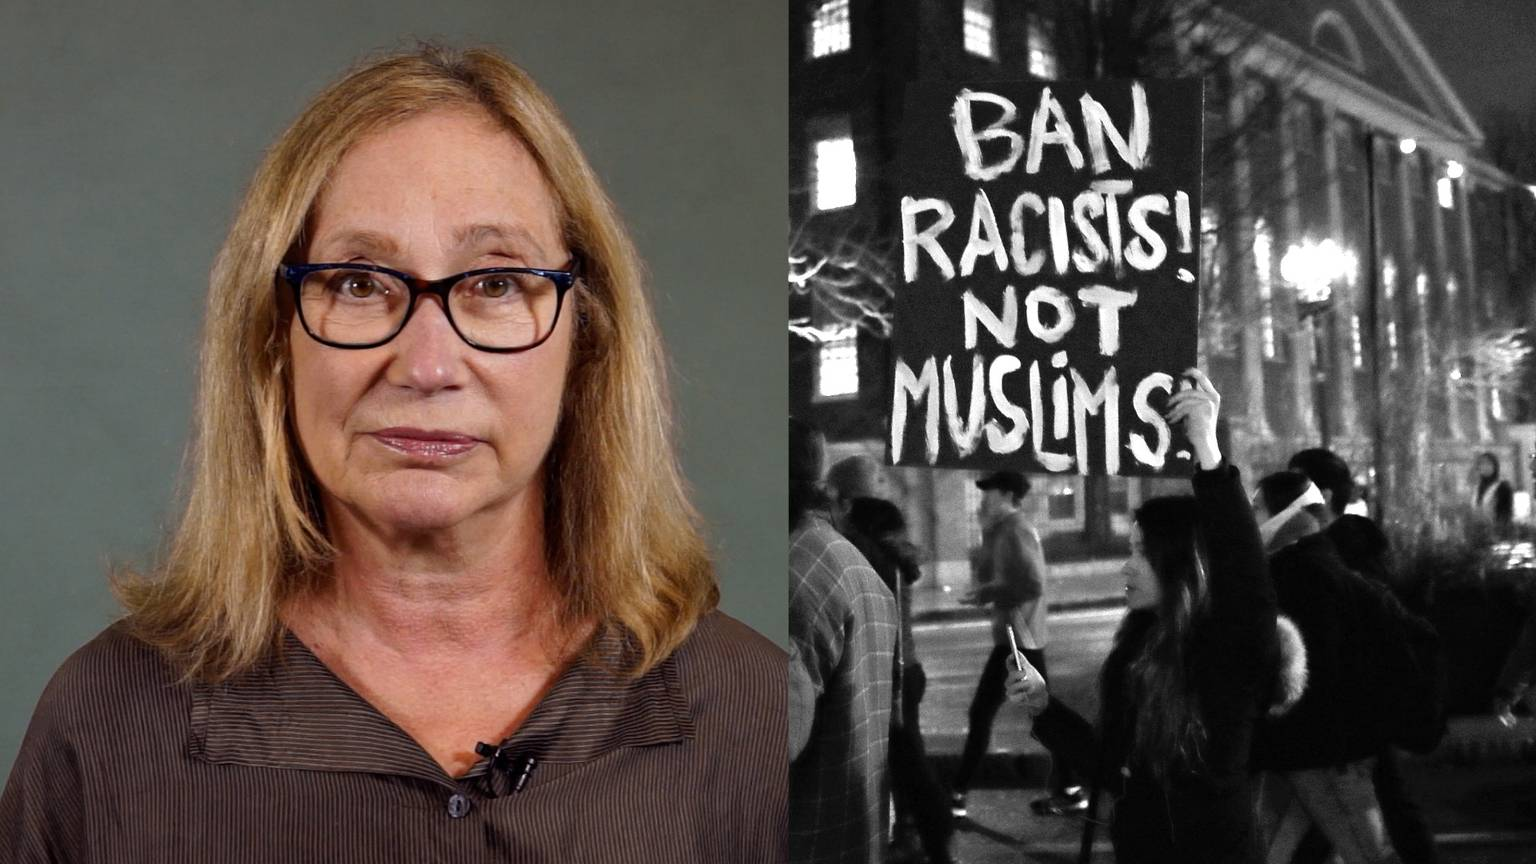 Don't remain silent about casual racism